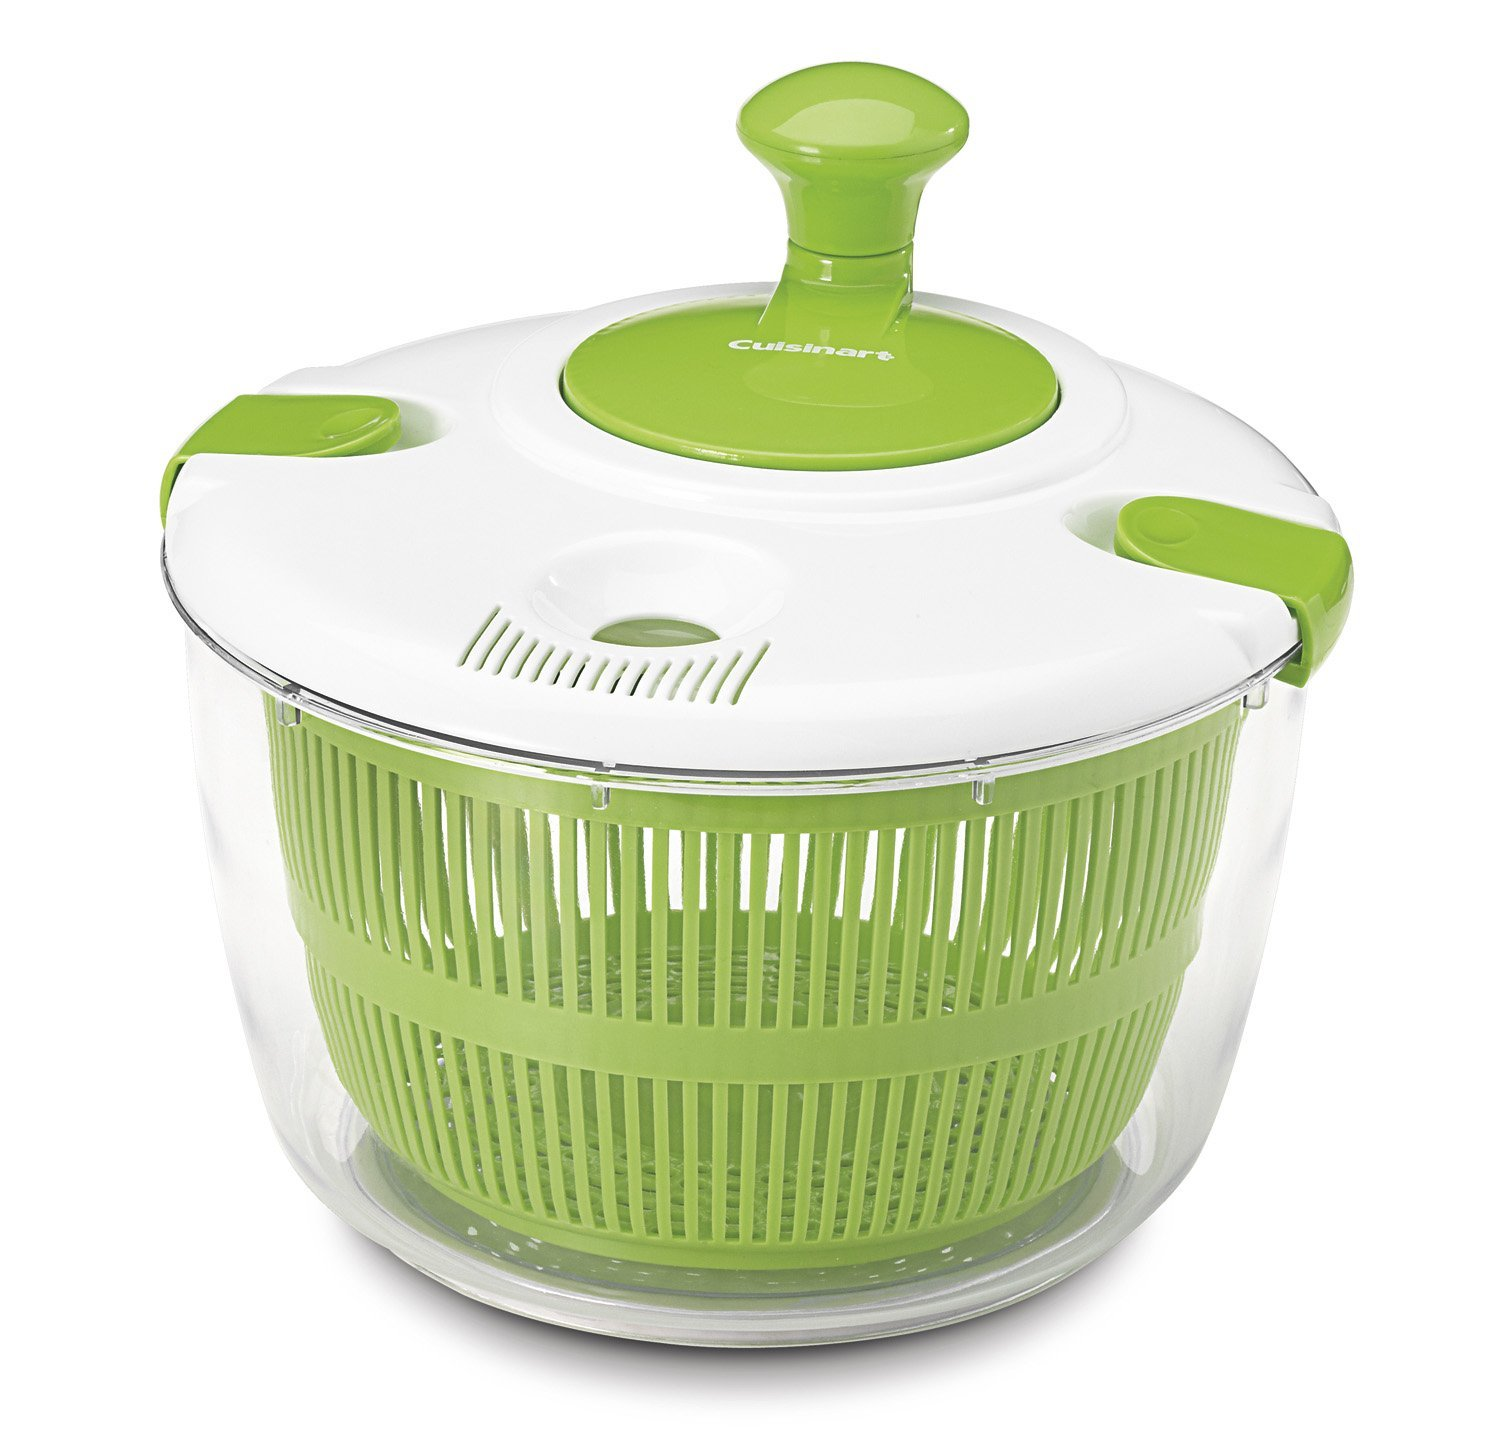 10 Best Salad Spinners for your Kitchen